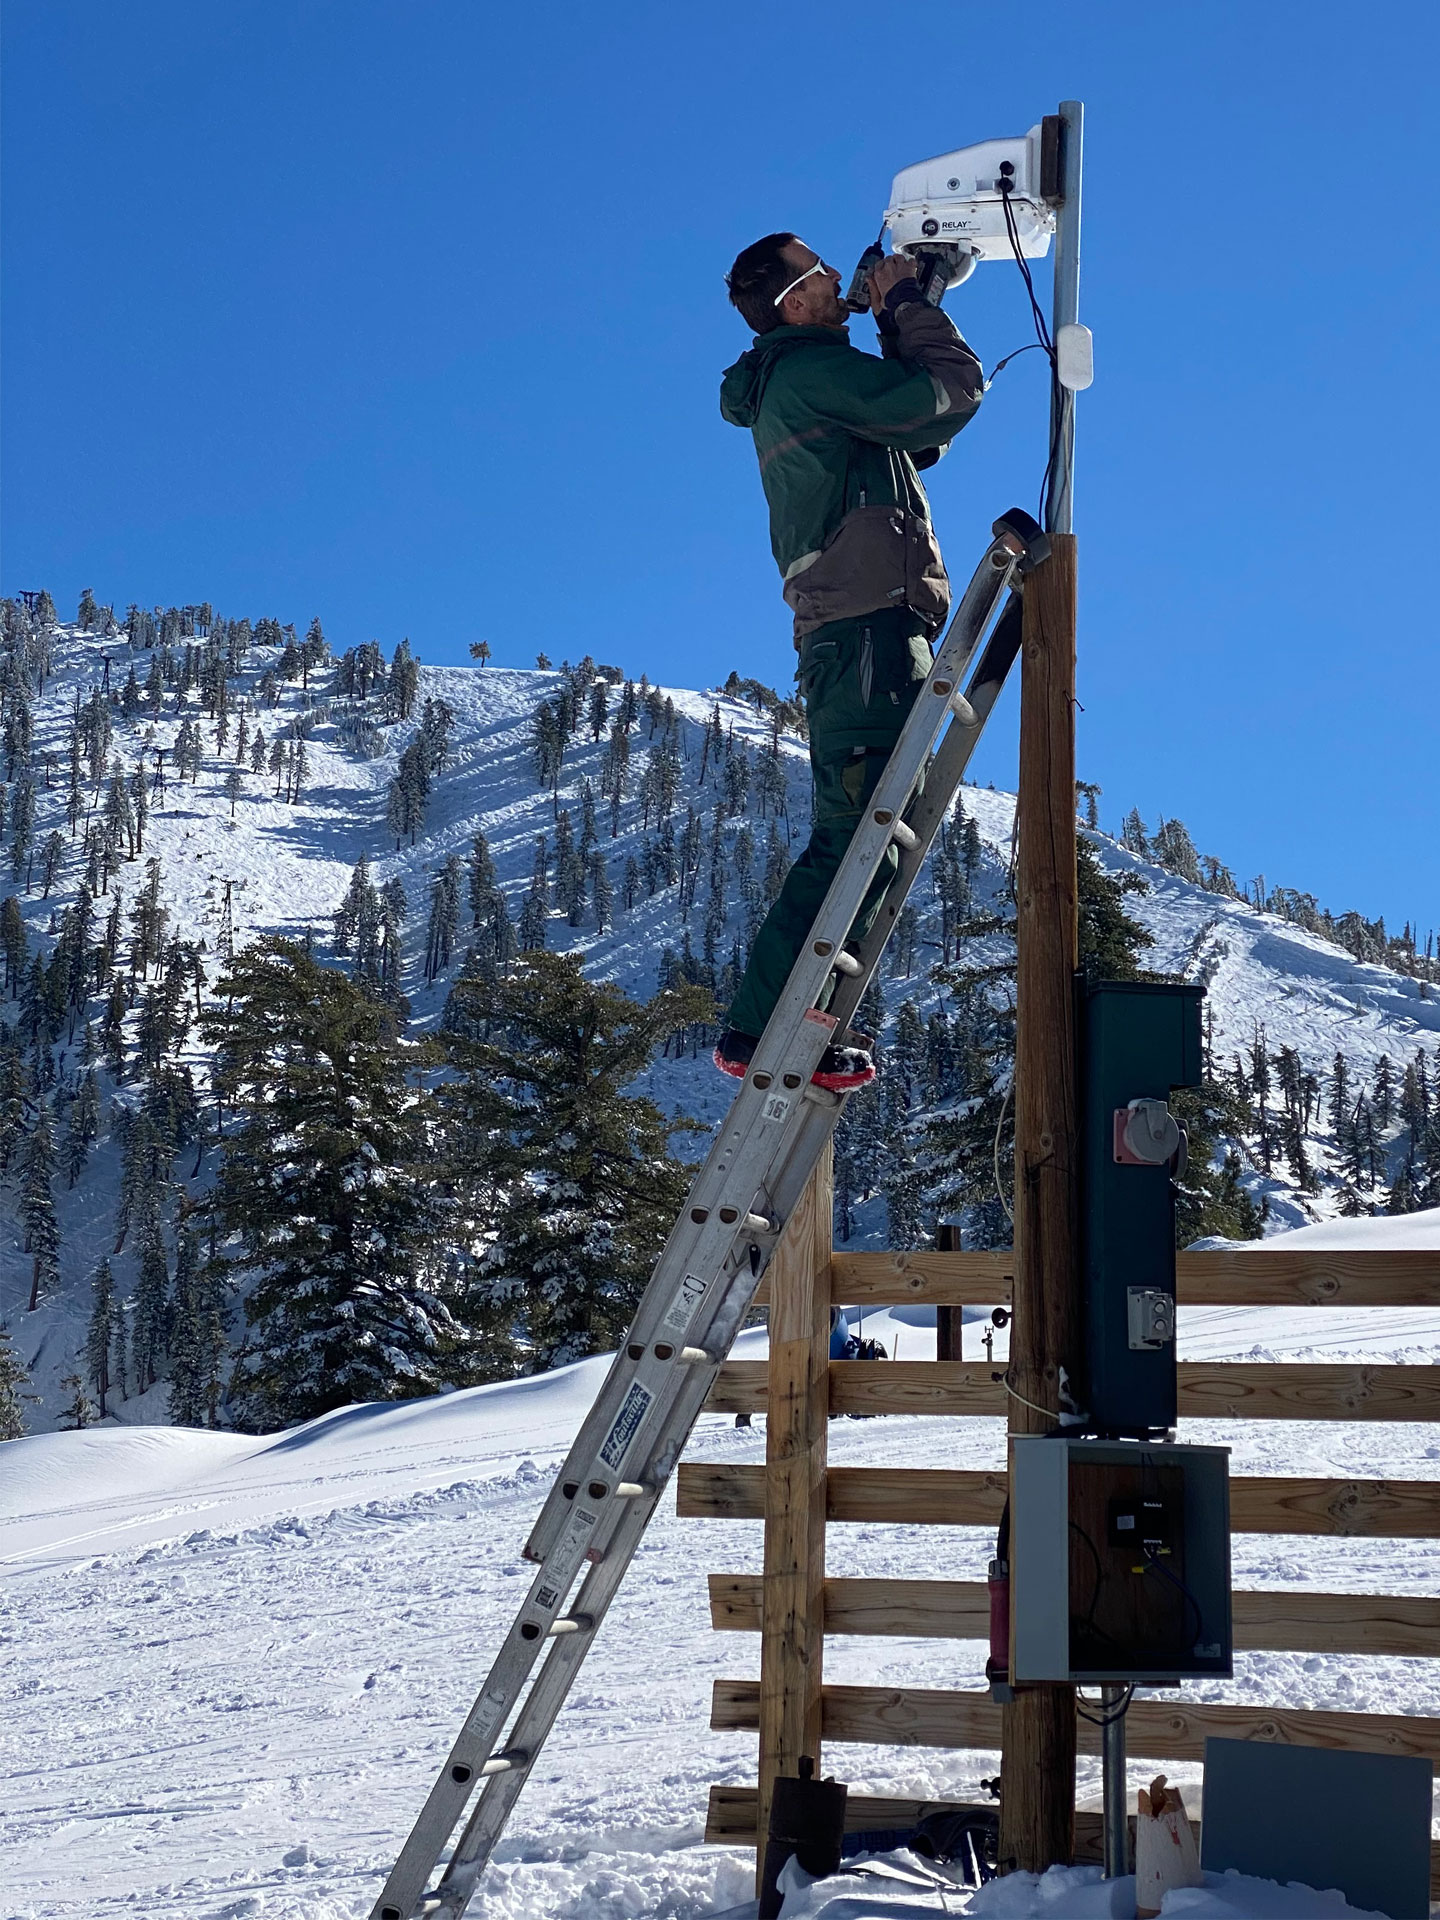 D2 IP68 Ring of Fire De Icing Camera Housing Install at Mount Baldy